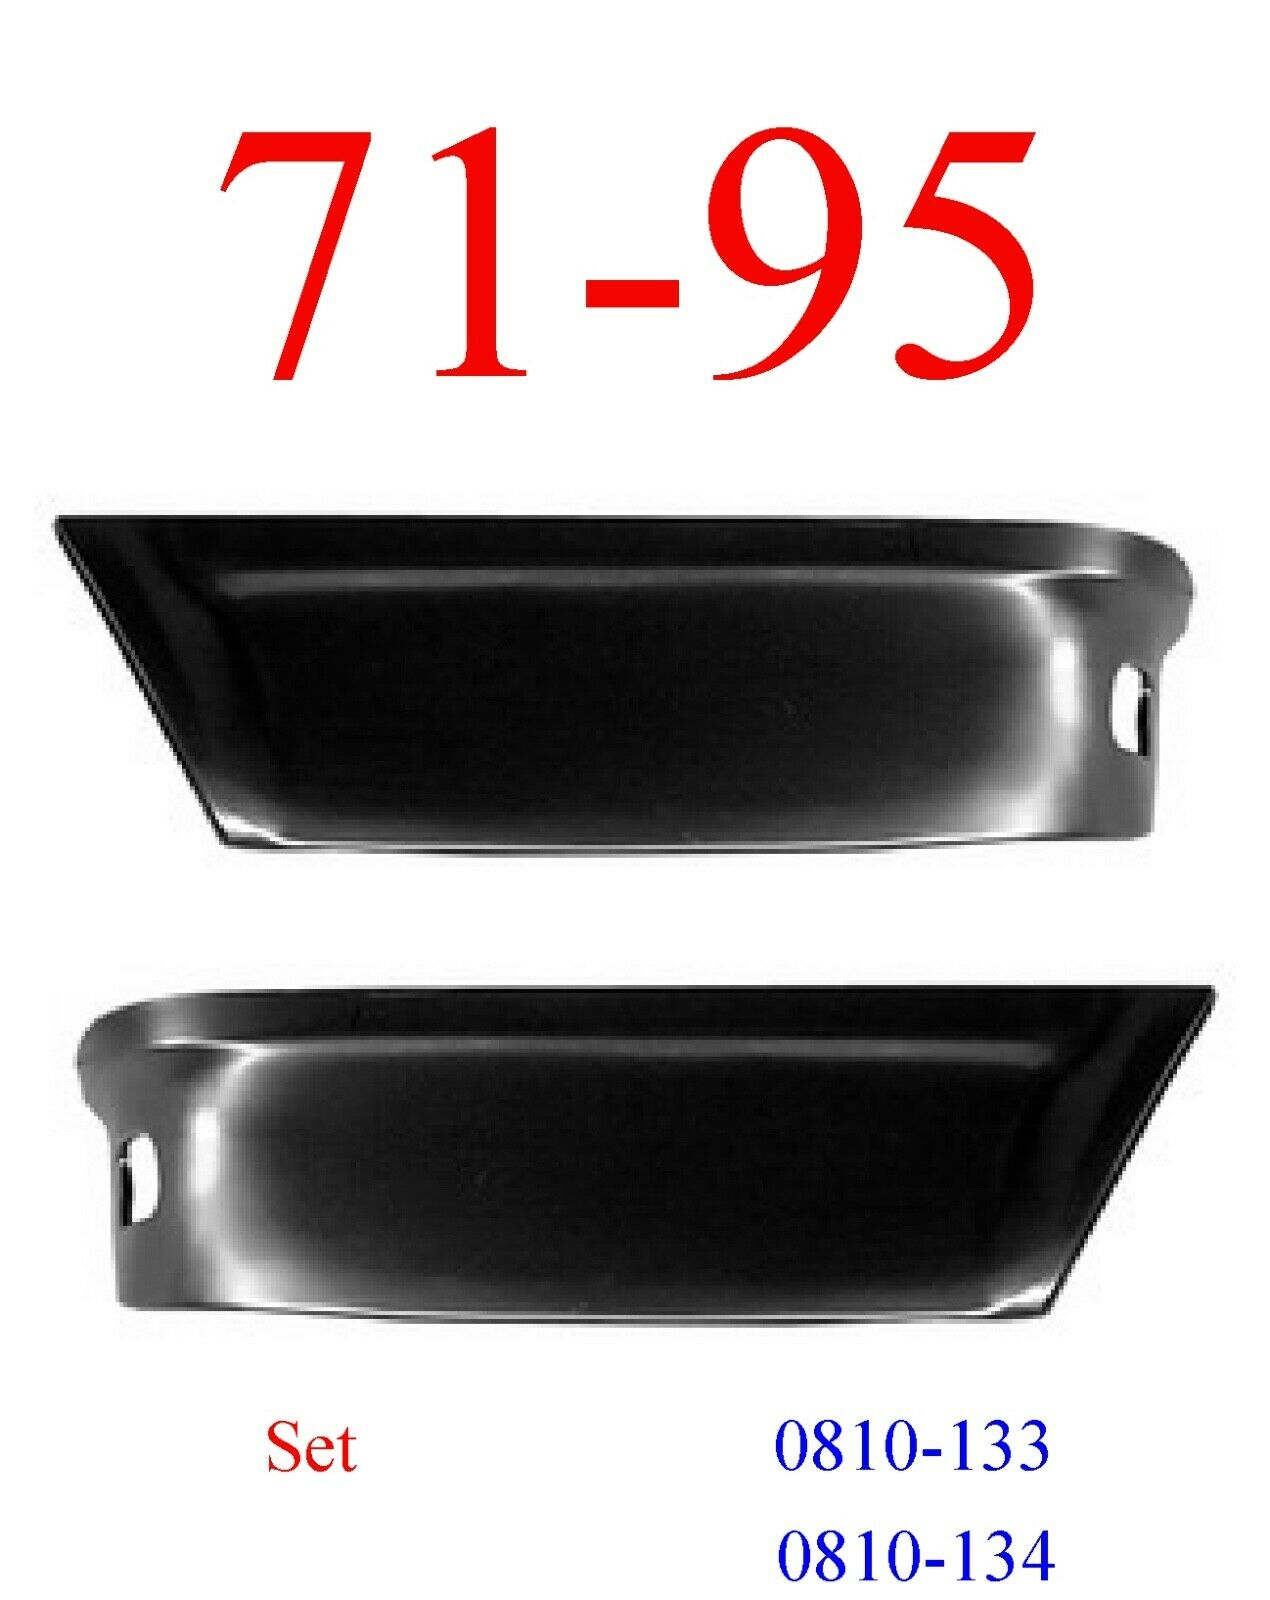 71-95 Chevy Van Rear Lower Panel Set